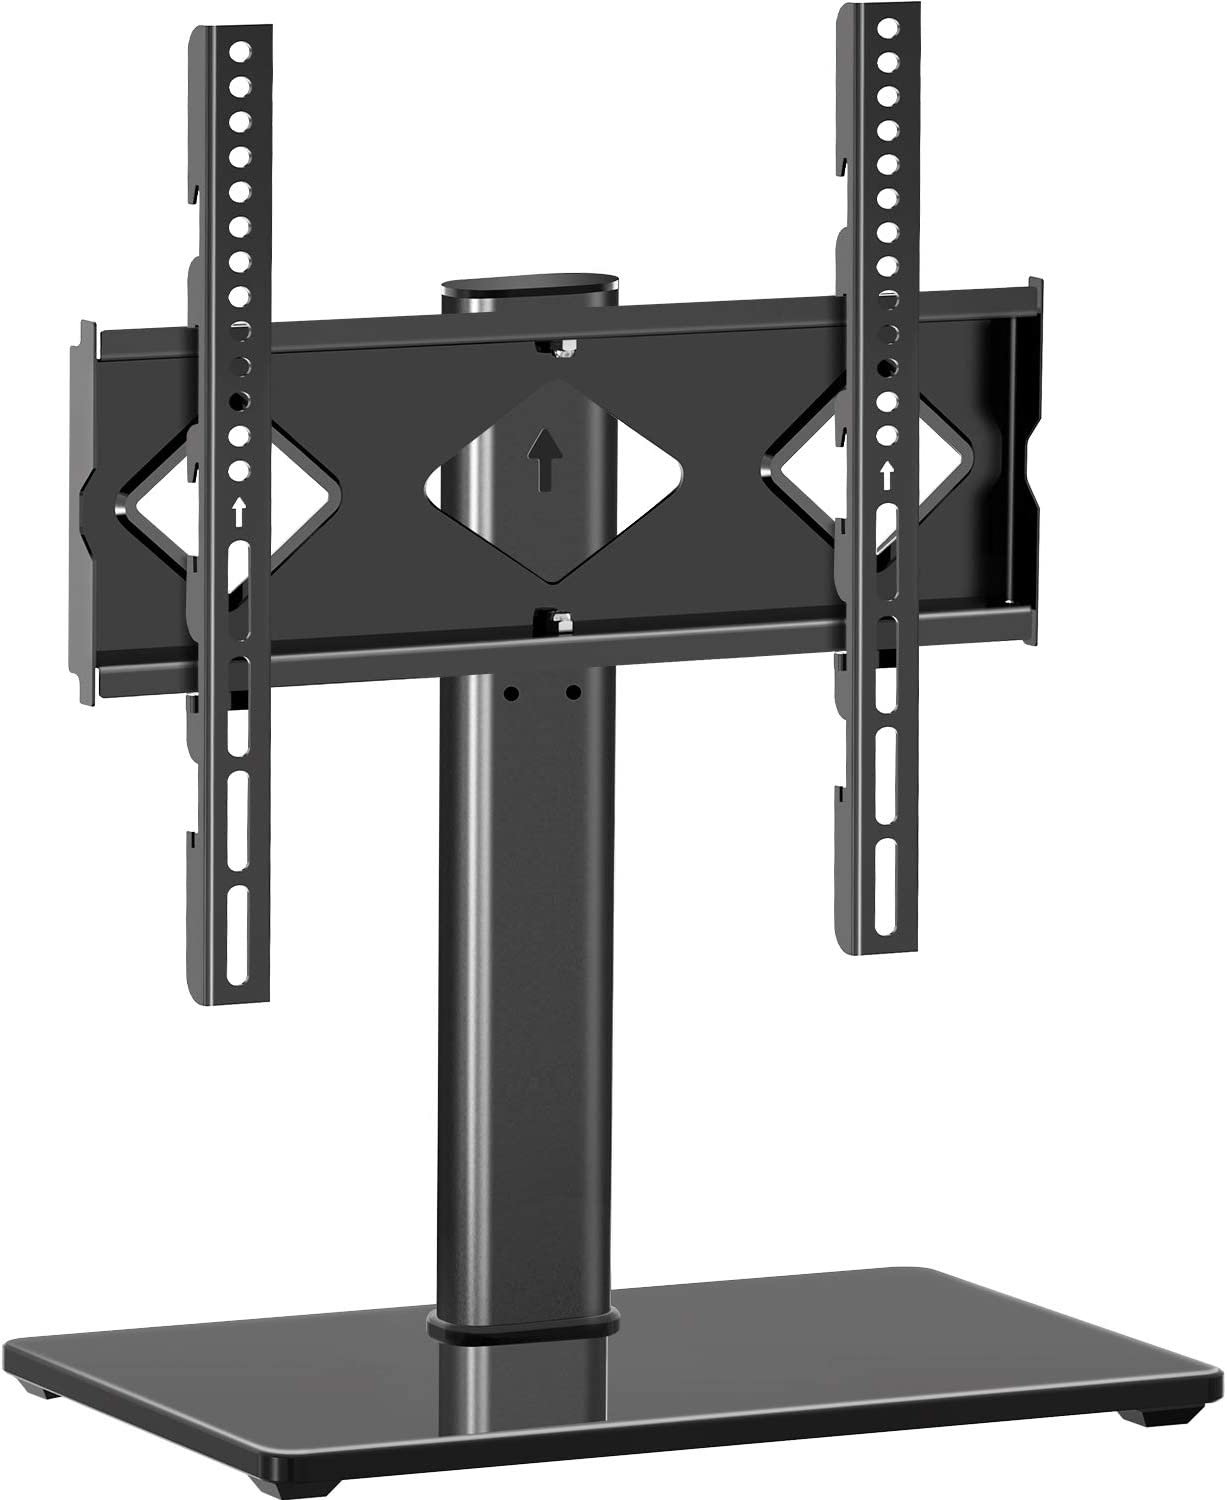 Universal TV Stand with Mount for 27-50 Inch LED LCD OLED Flat Screen Max VESA 400x400mm MU0003 MOUNTUP Table Top TV Stand Height Adjustable Swivel TV Stand Base